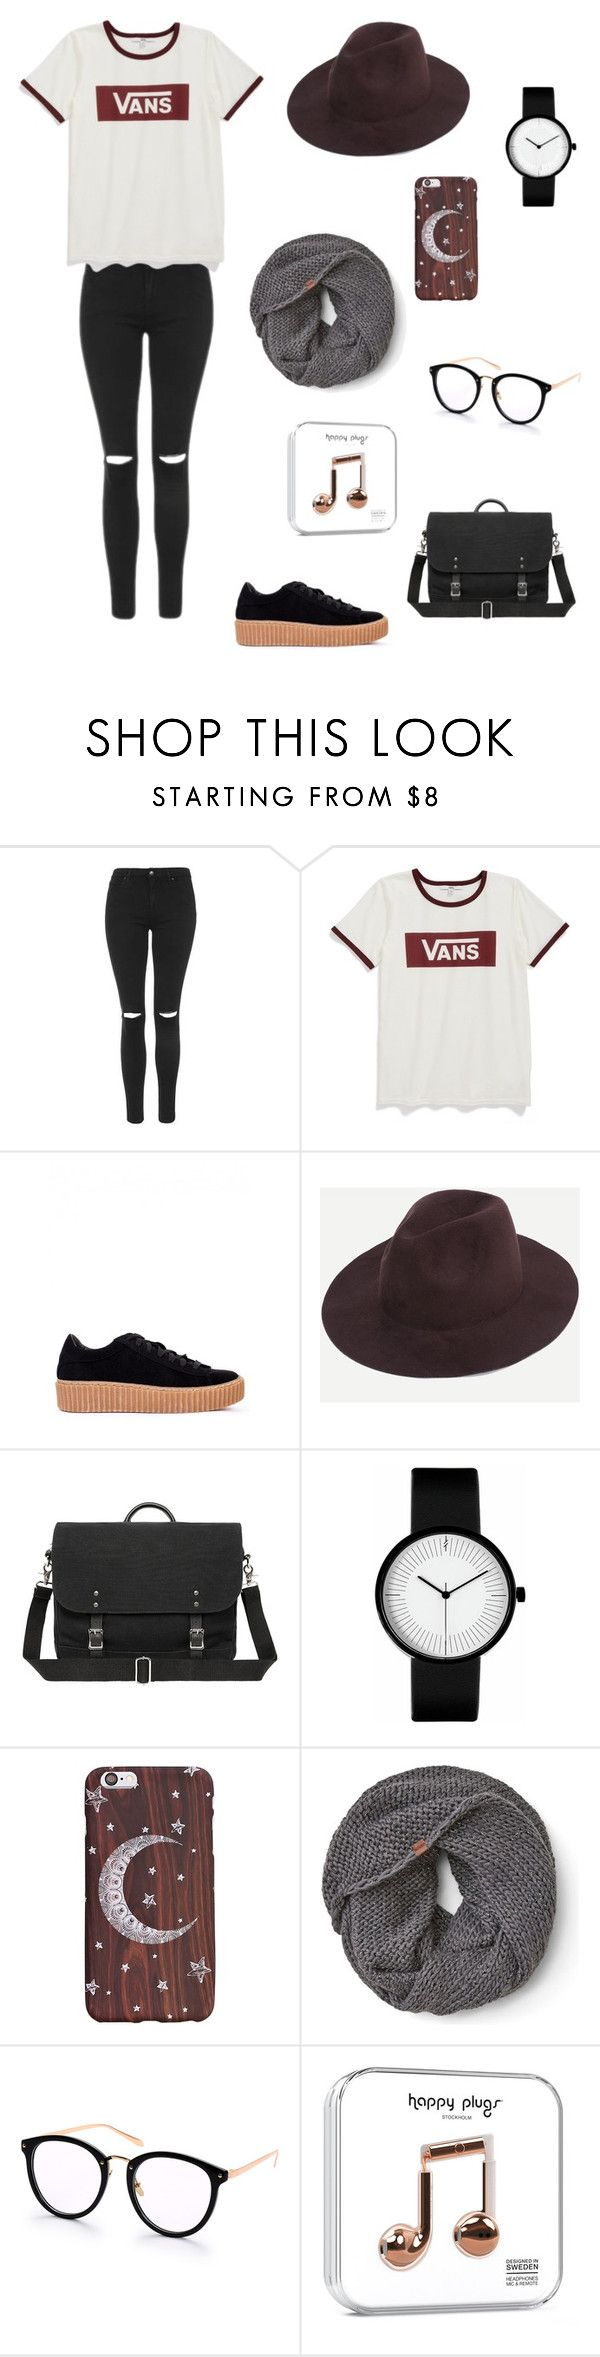 """""""Back to school"""" by magdons on Polyvore featuring Topshop, Vans and Keds"""